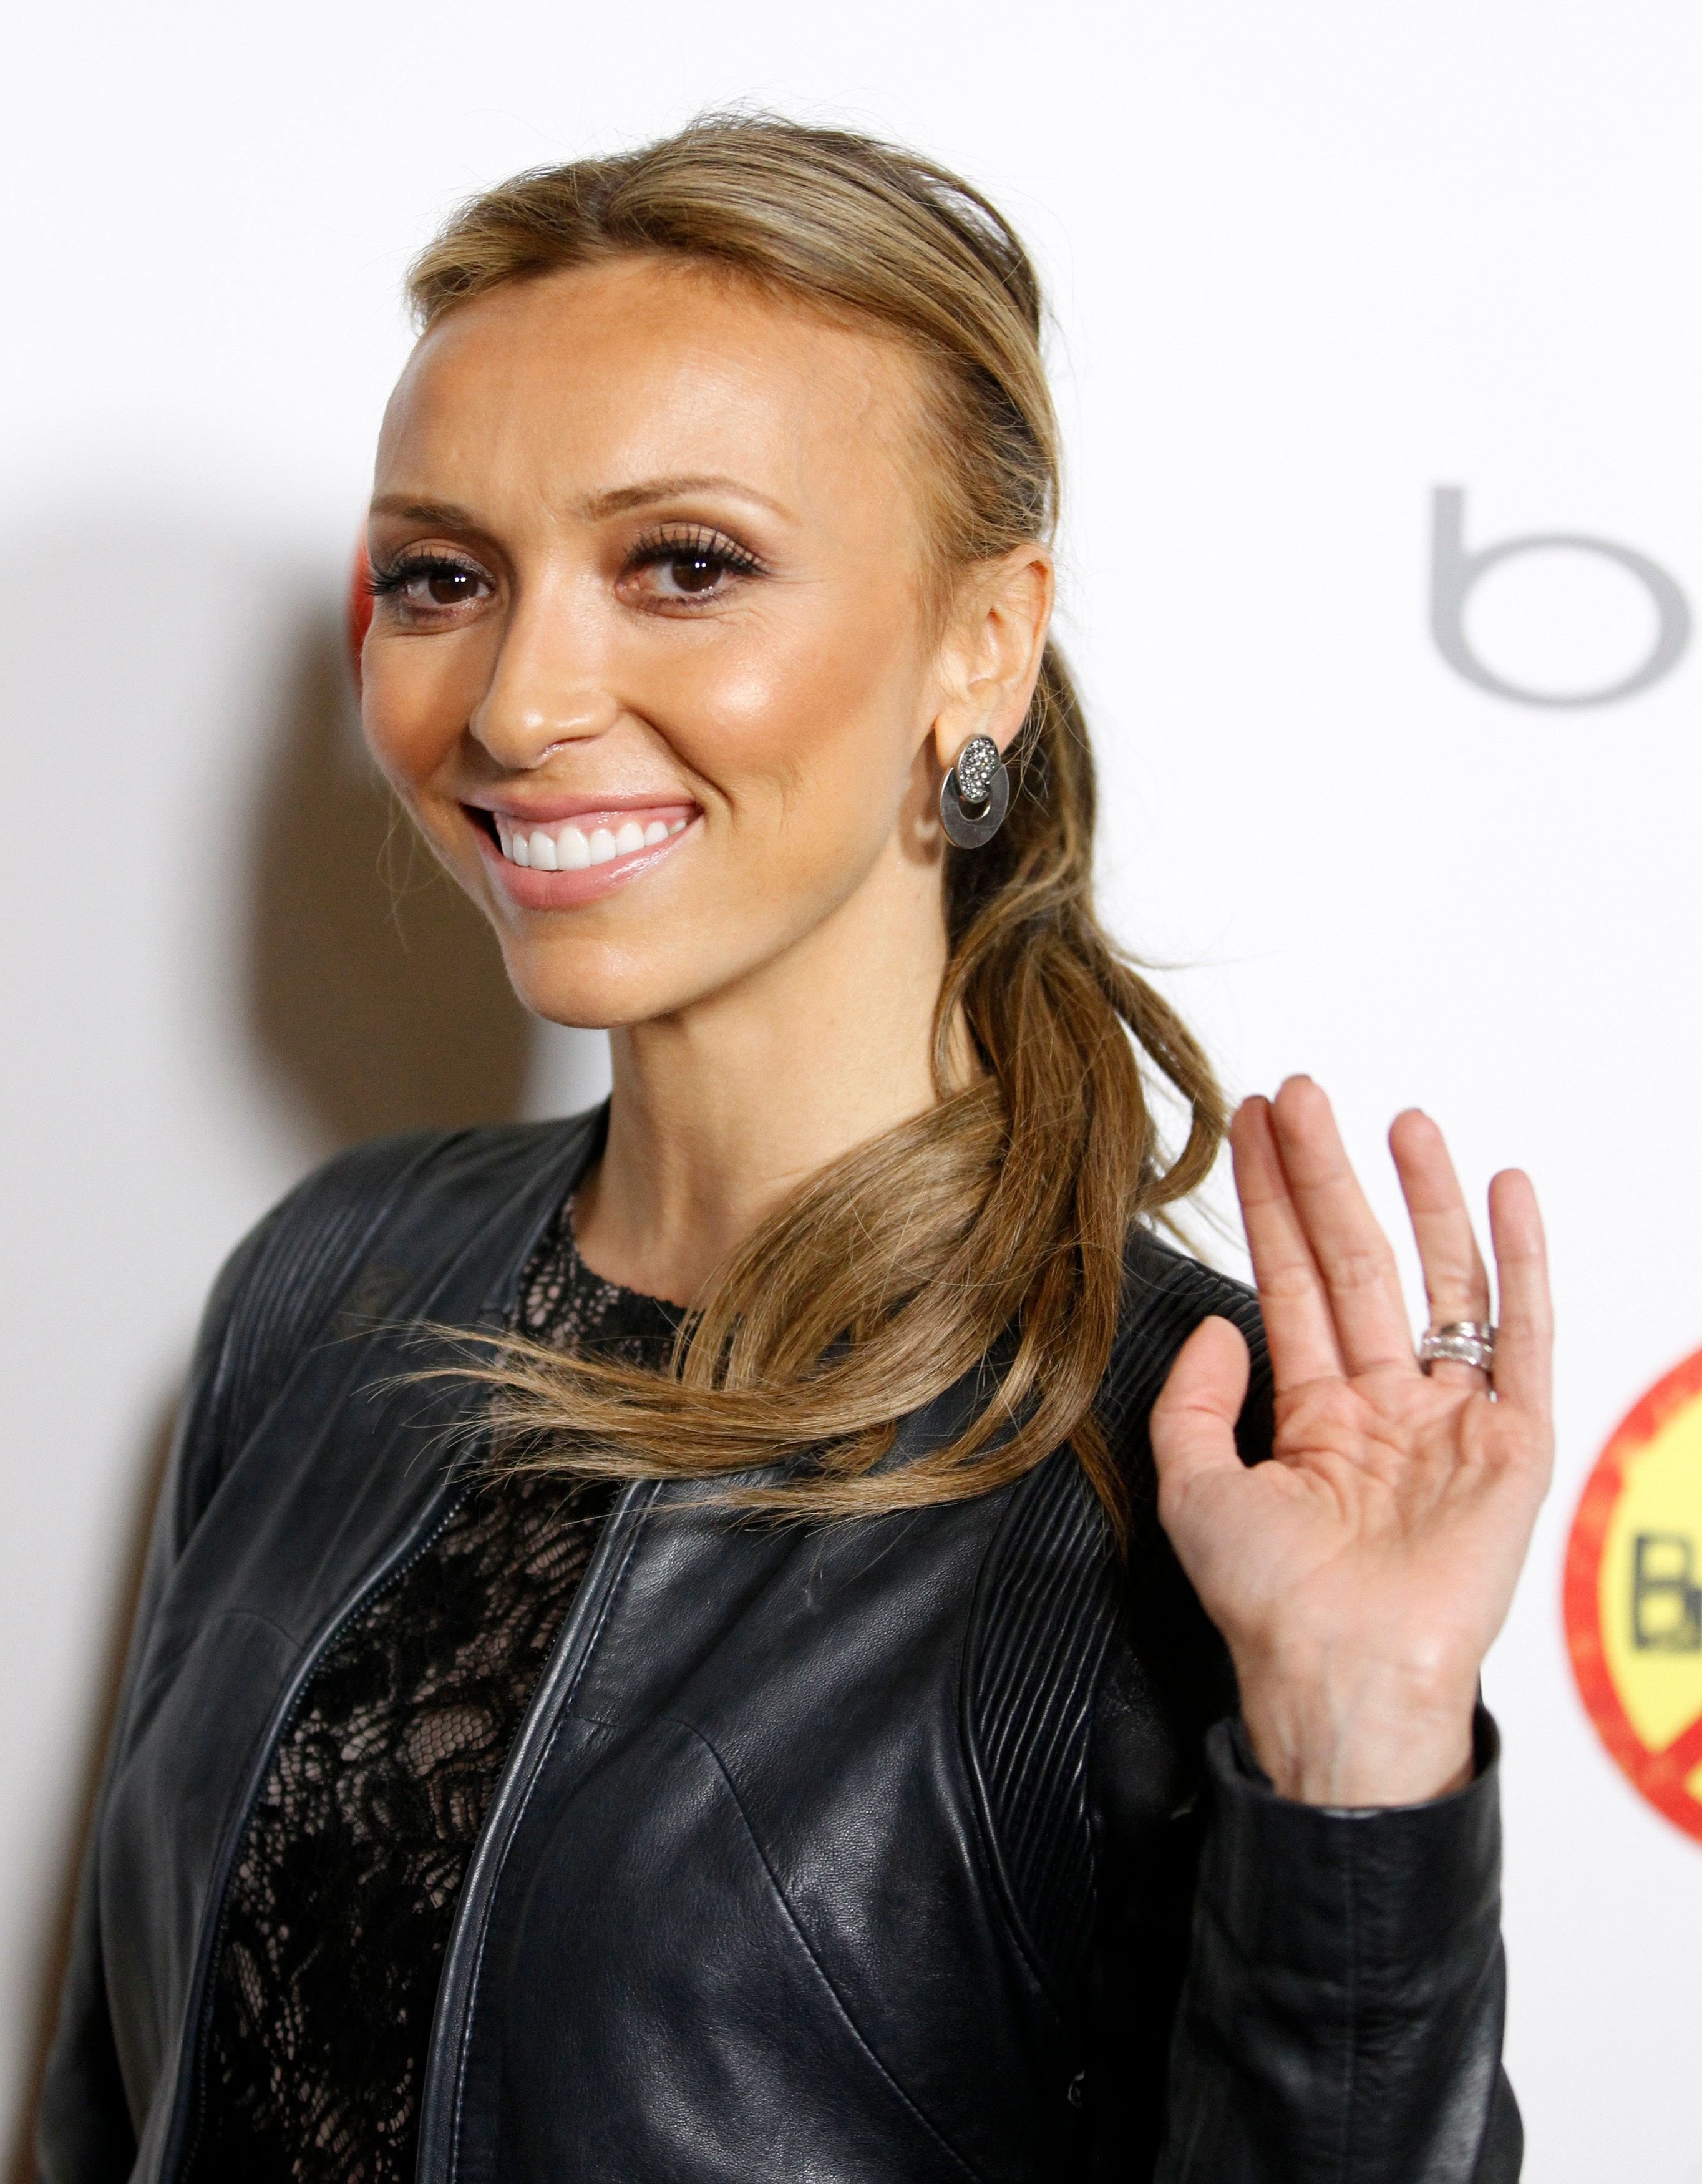 """Television personality and the evening's co-host Giuliana Rancic poses at the Los Angeles premiere of the documentary film """"Bully"""" in Hollywood March 26, 2012. REUTERS/Danny Moloshok (UNITED STATES - Tags: ENTERTAINMENT HEADSHOT)"""